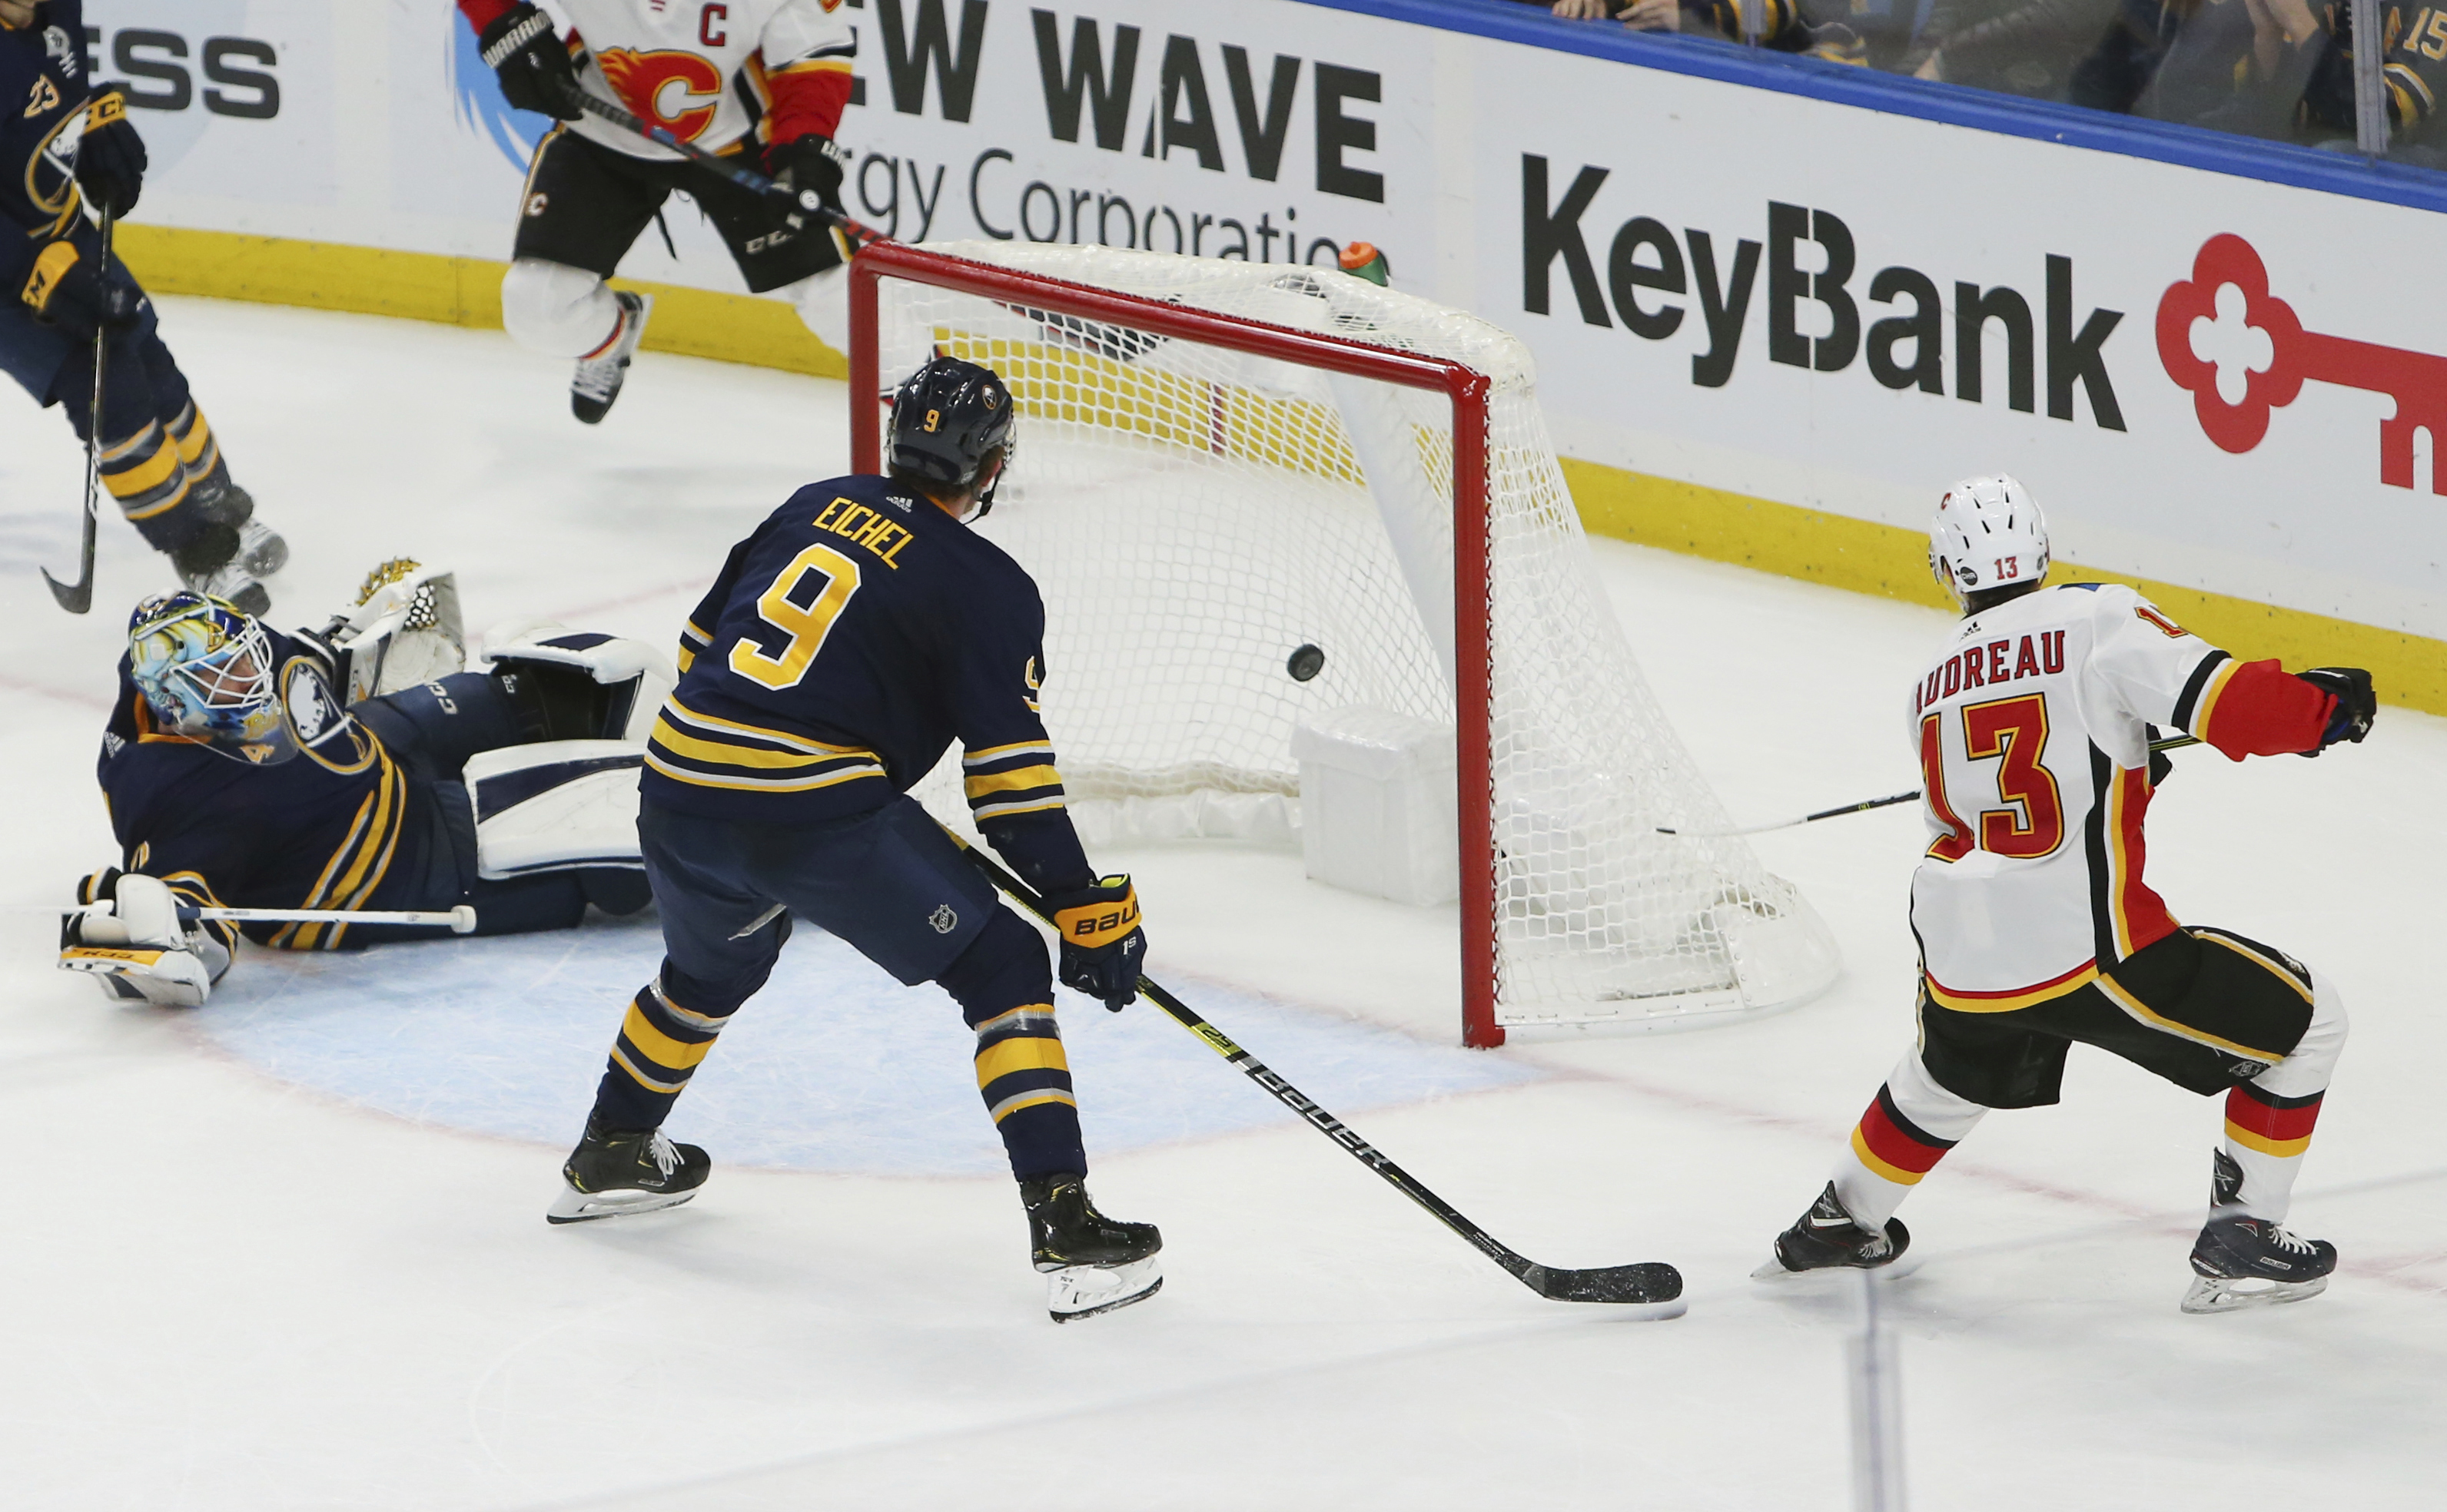 Tkachuk scores late, Gaudreau in OT as Flames beat Sabres